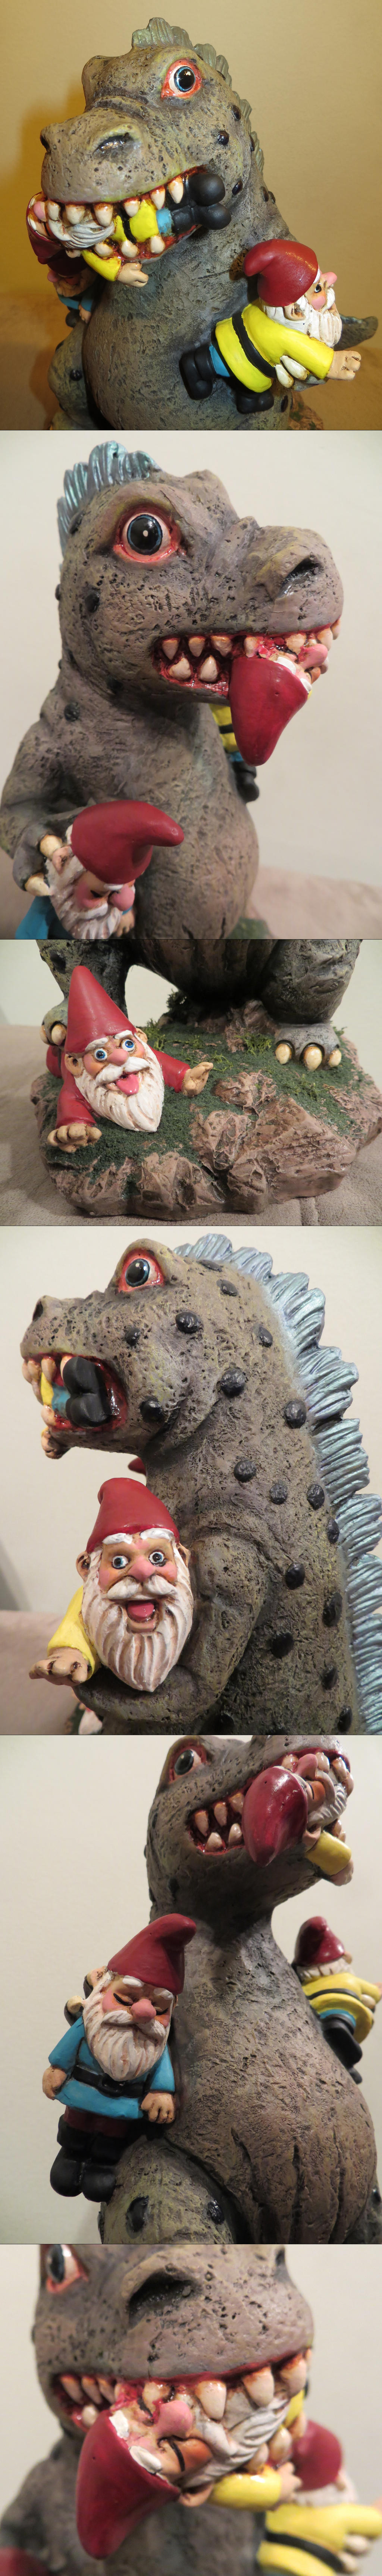 O Gno! Gnomes Gnashed and Gnawed Gnaughtily by Legrandzilla